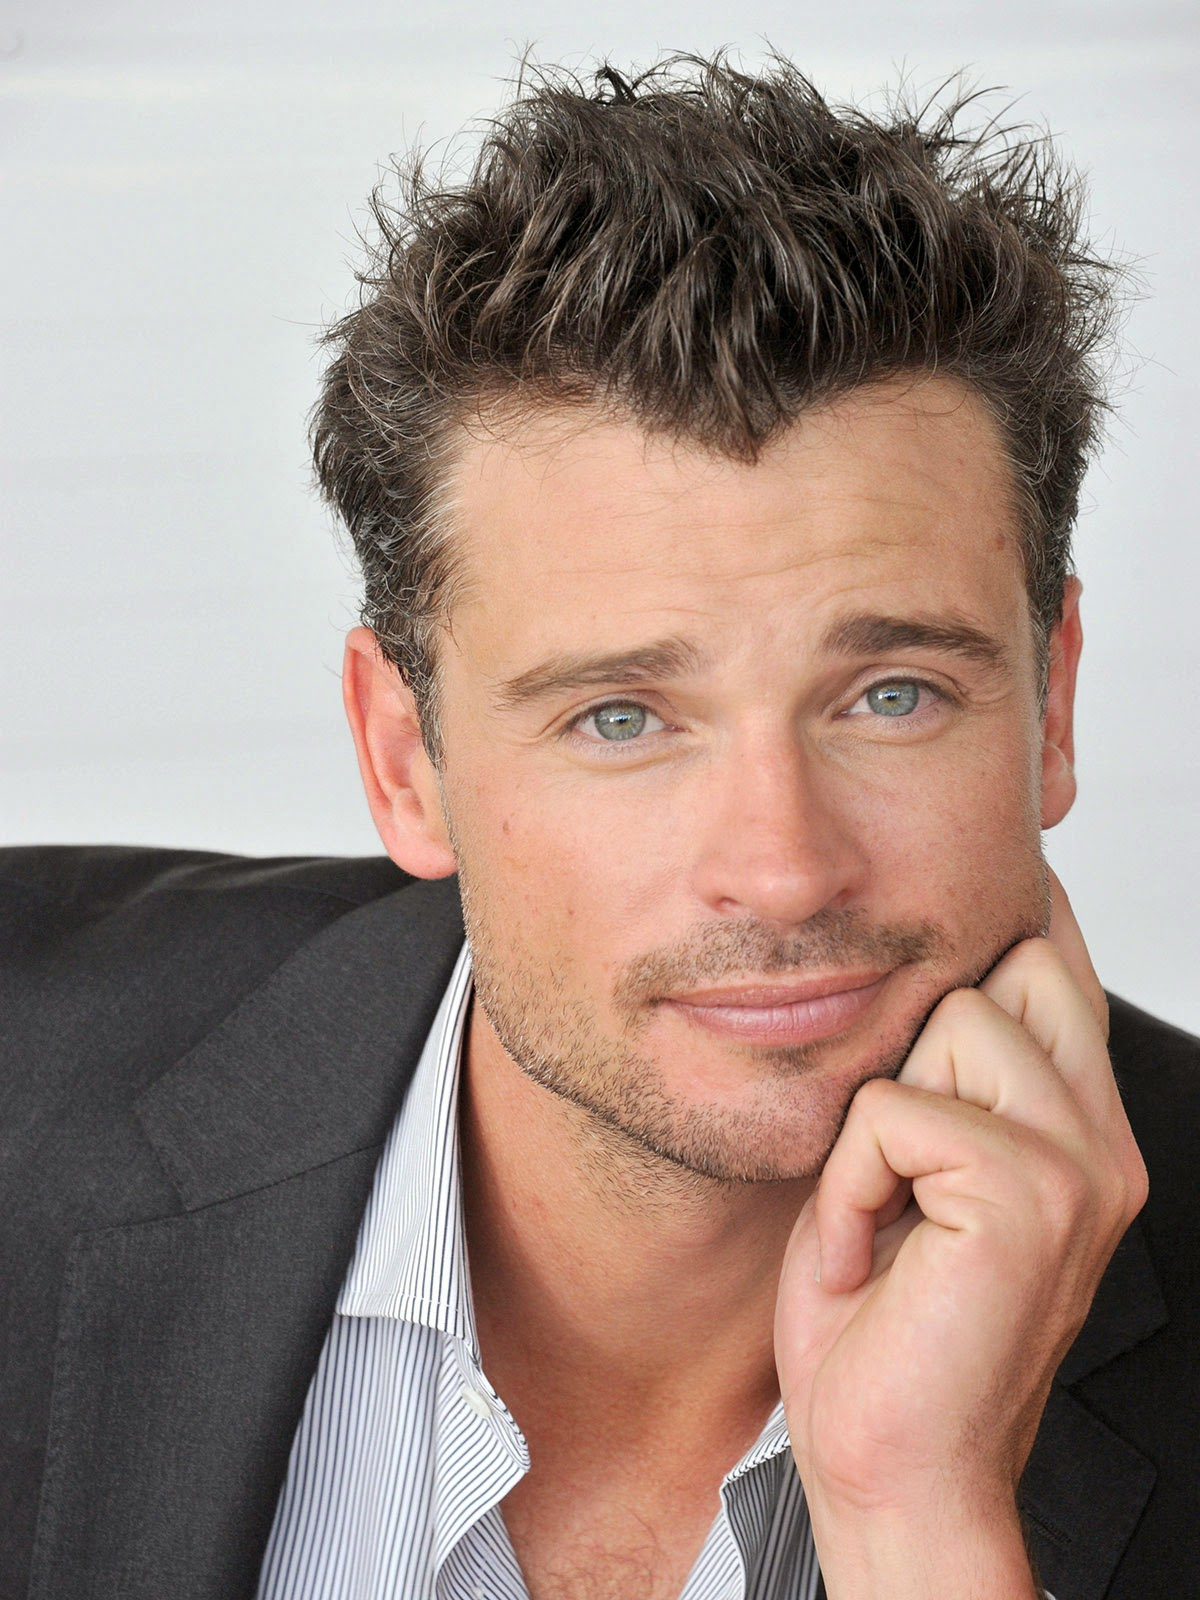 American Director Tom Welling New Photo Shoot Images